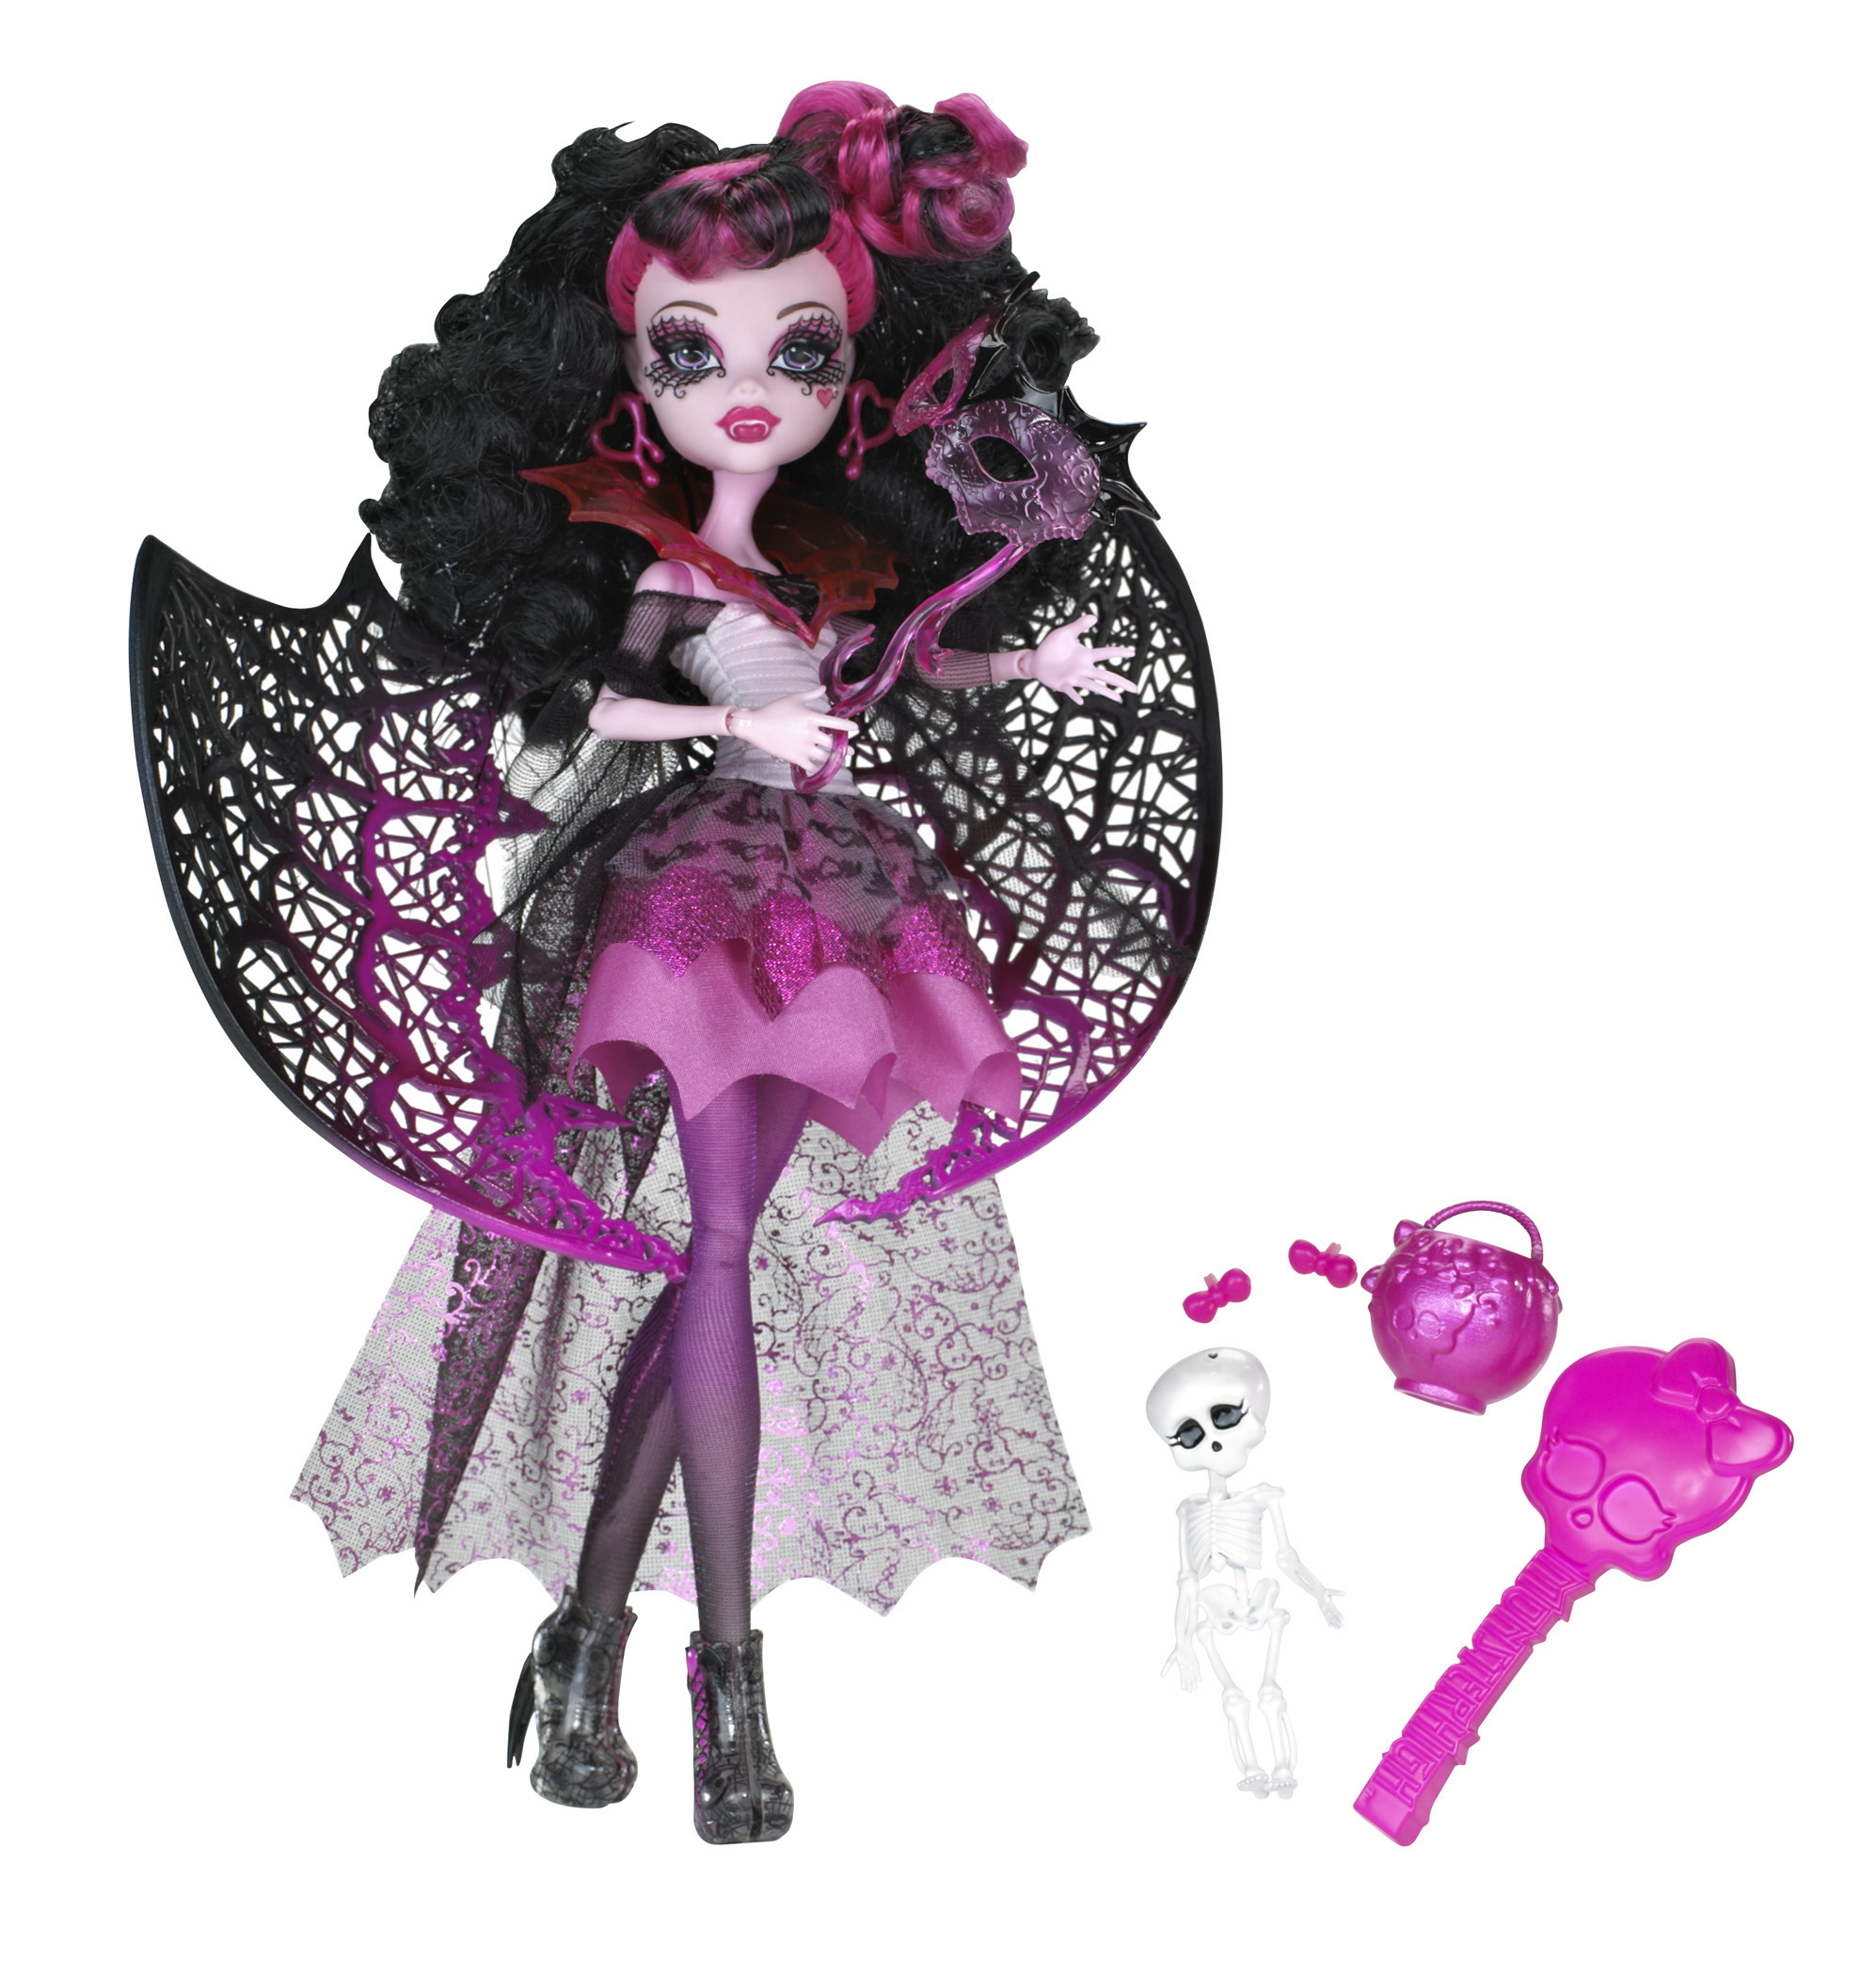 Monster high is awesome images mh hd wallpaper and - Monster high image ...